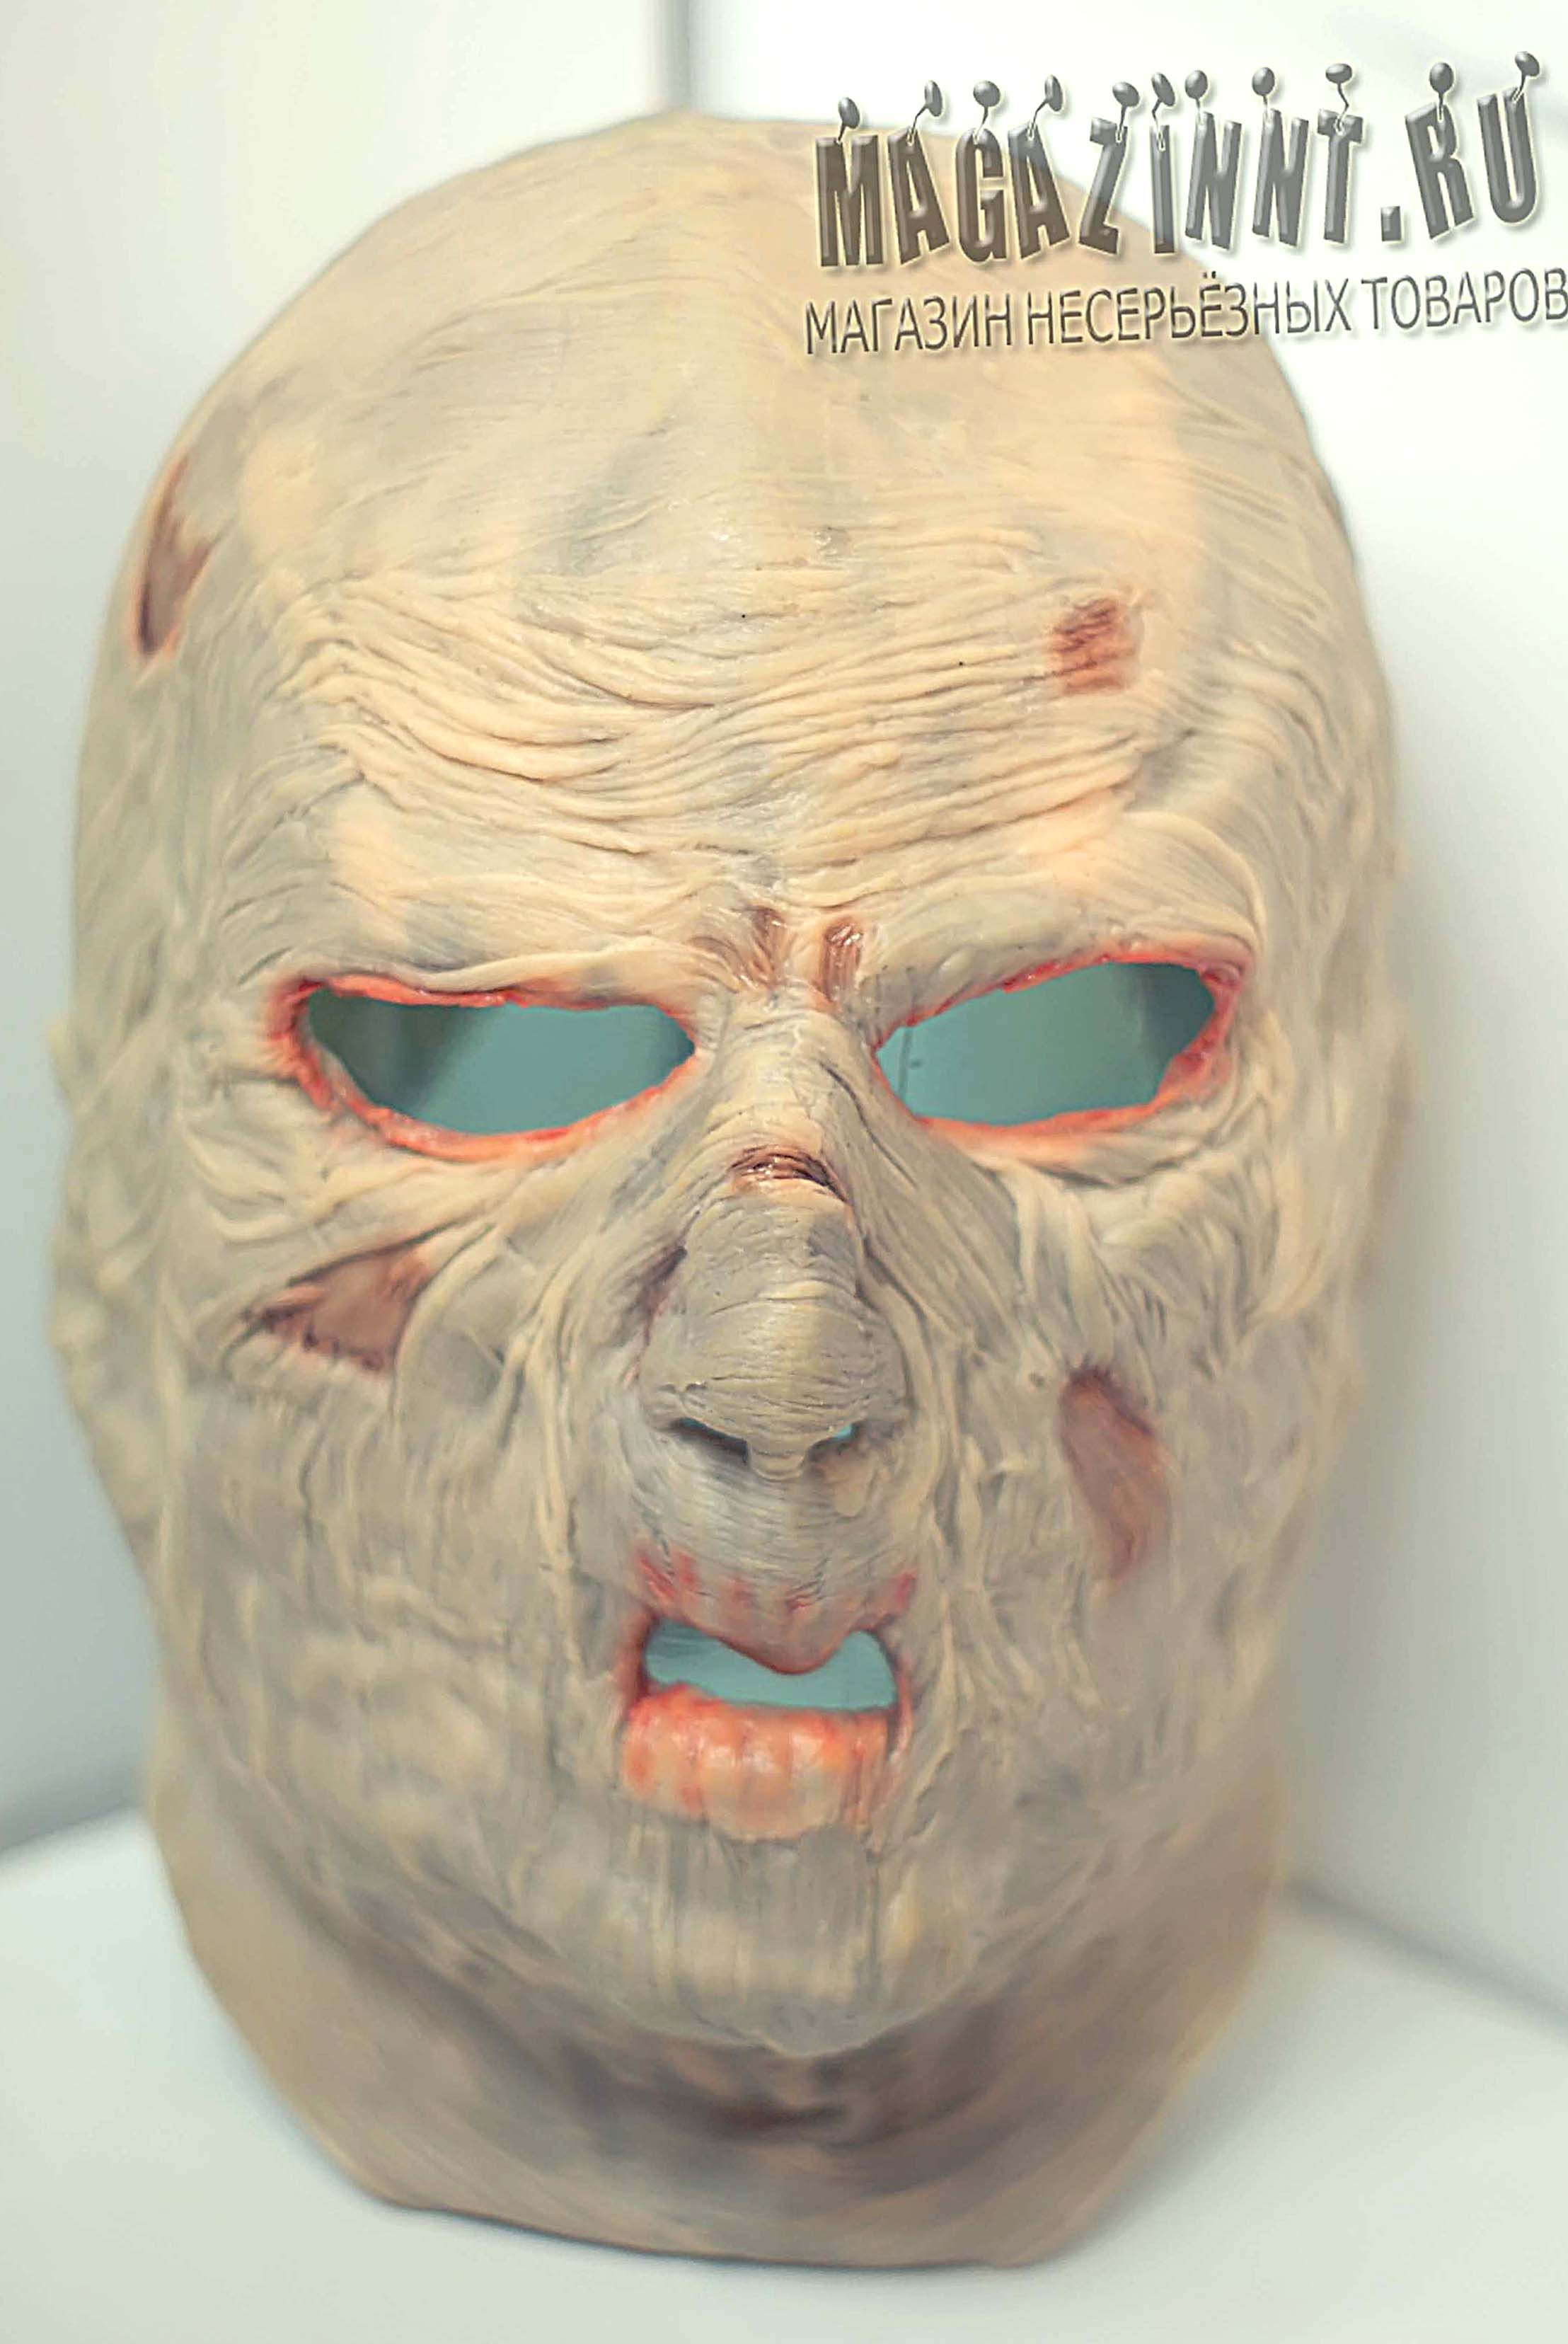 Pin by Magazinnt on Mummy mask from the movie Scary Сorpse